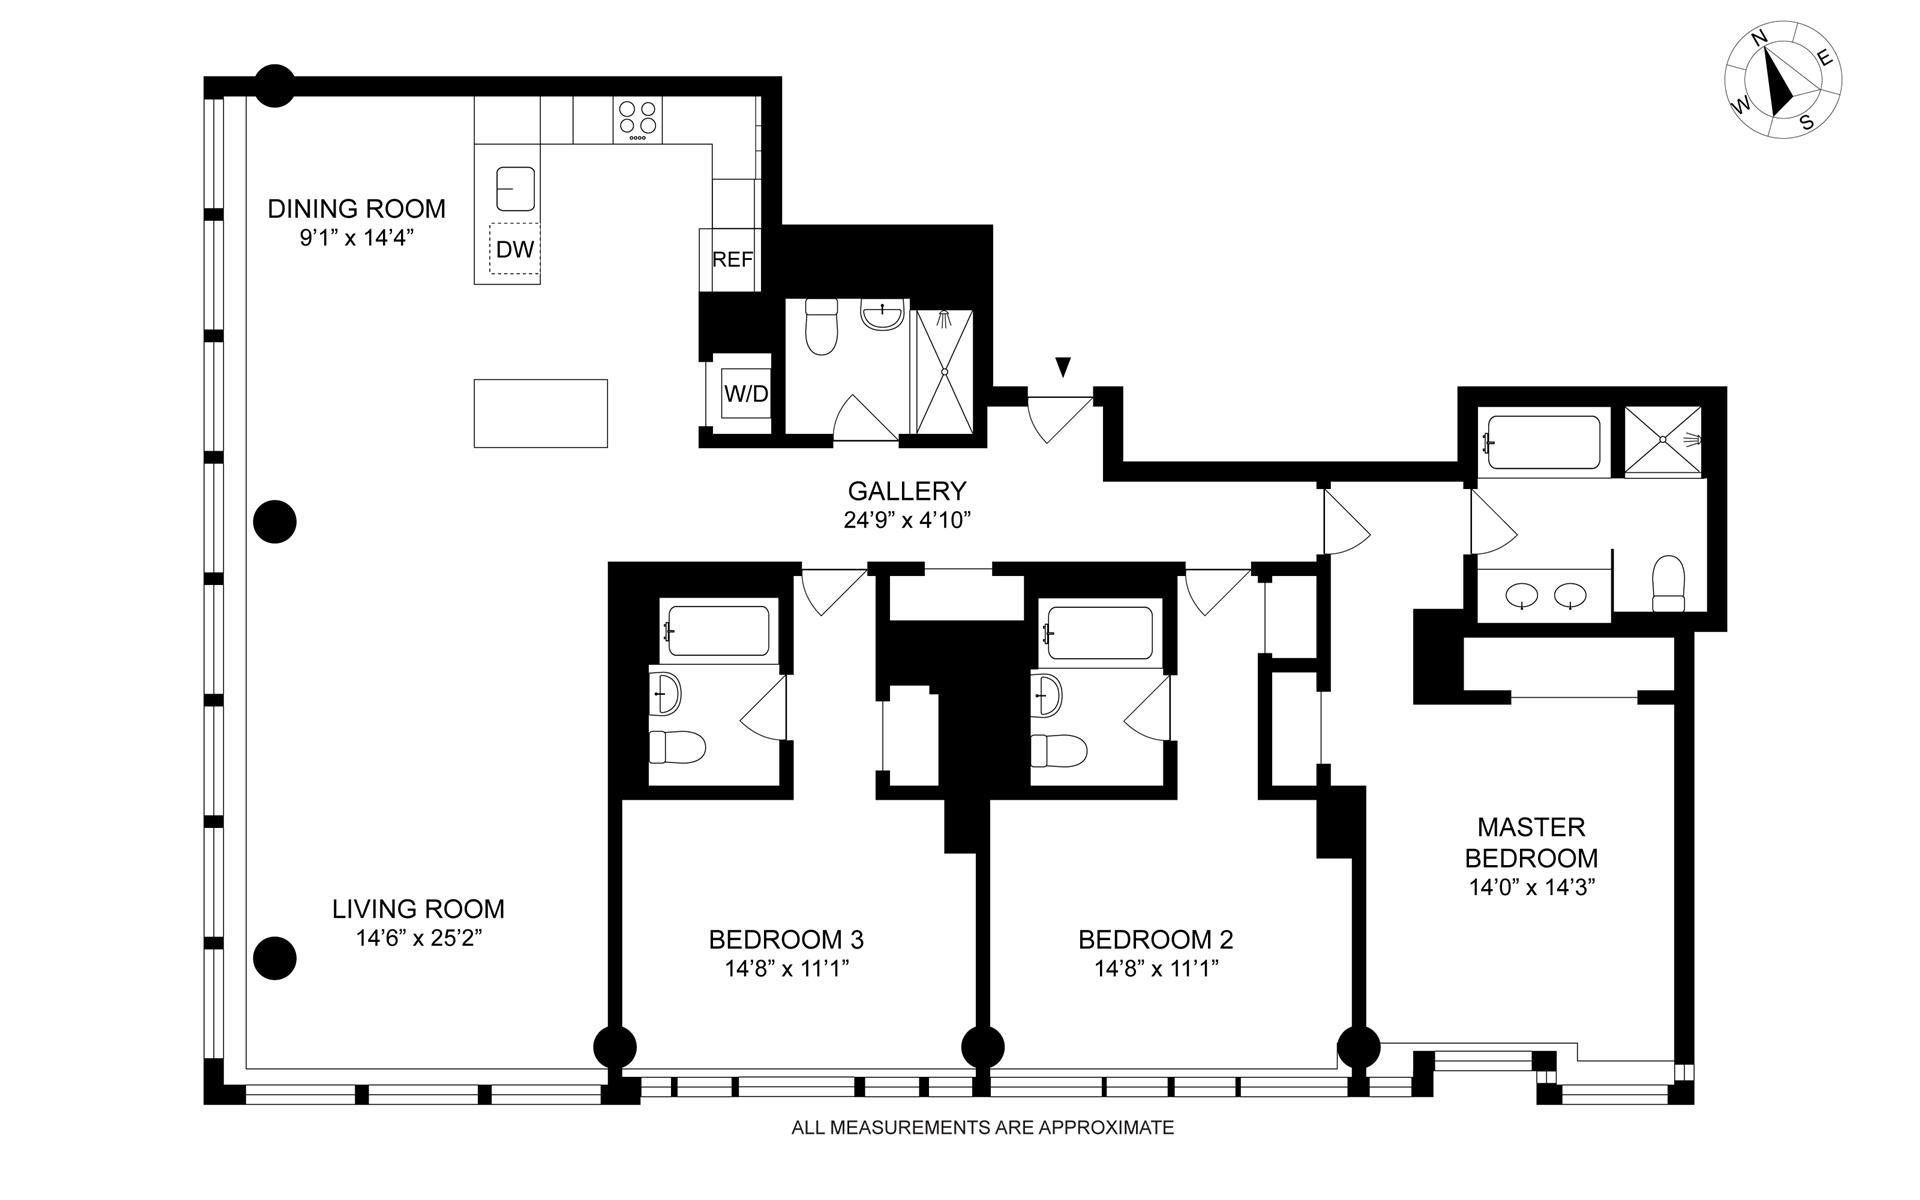 Floor plan of The Riverhouse, 2 River Terrace, 30D - Battery Park City, New York